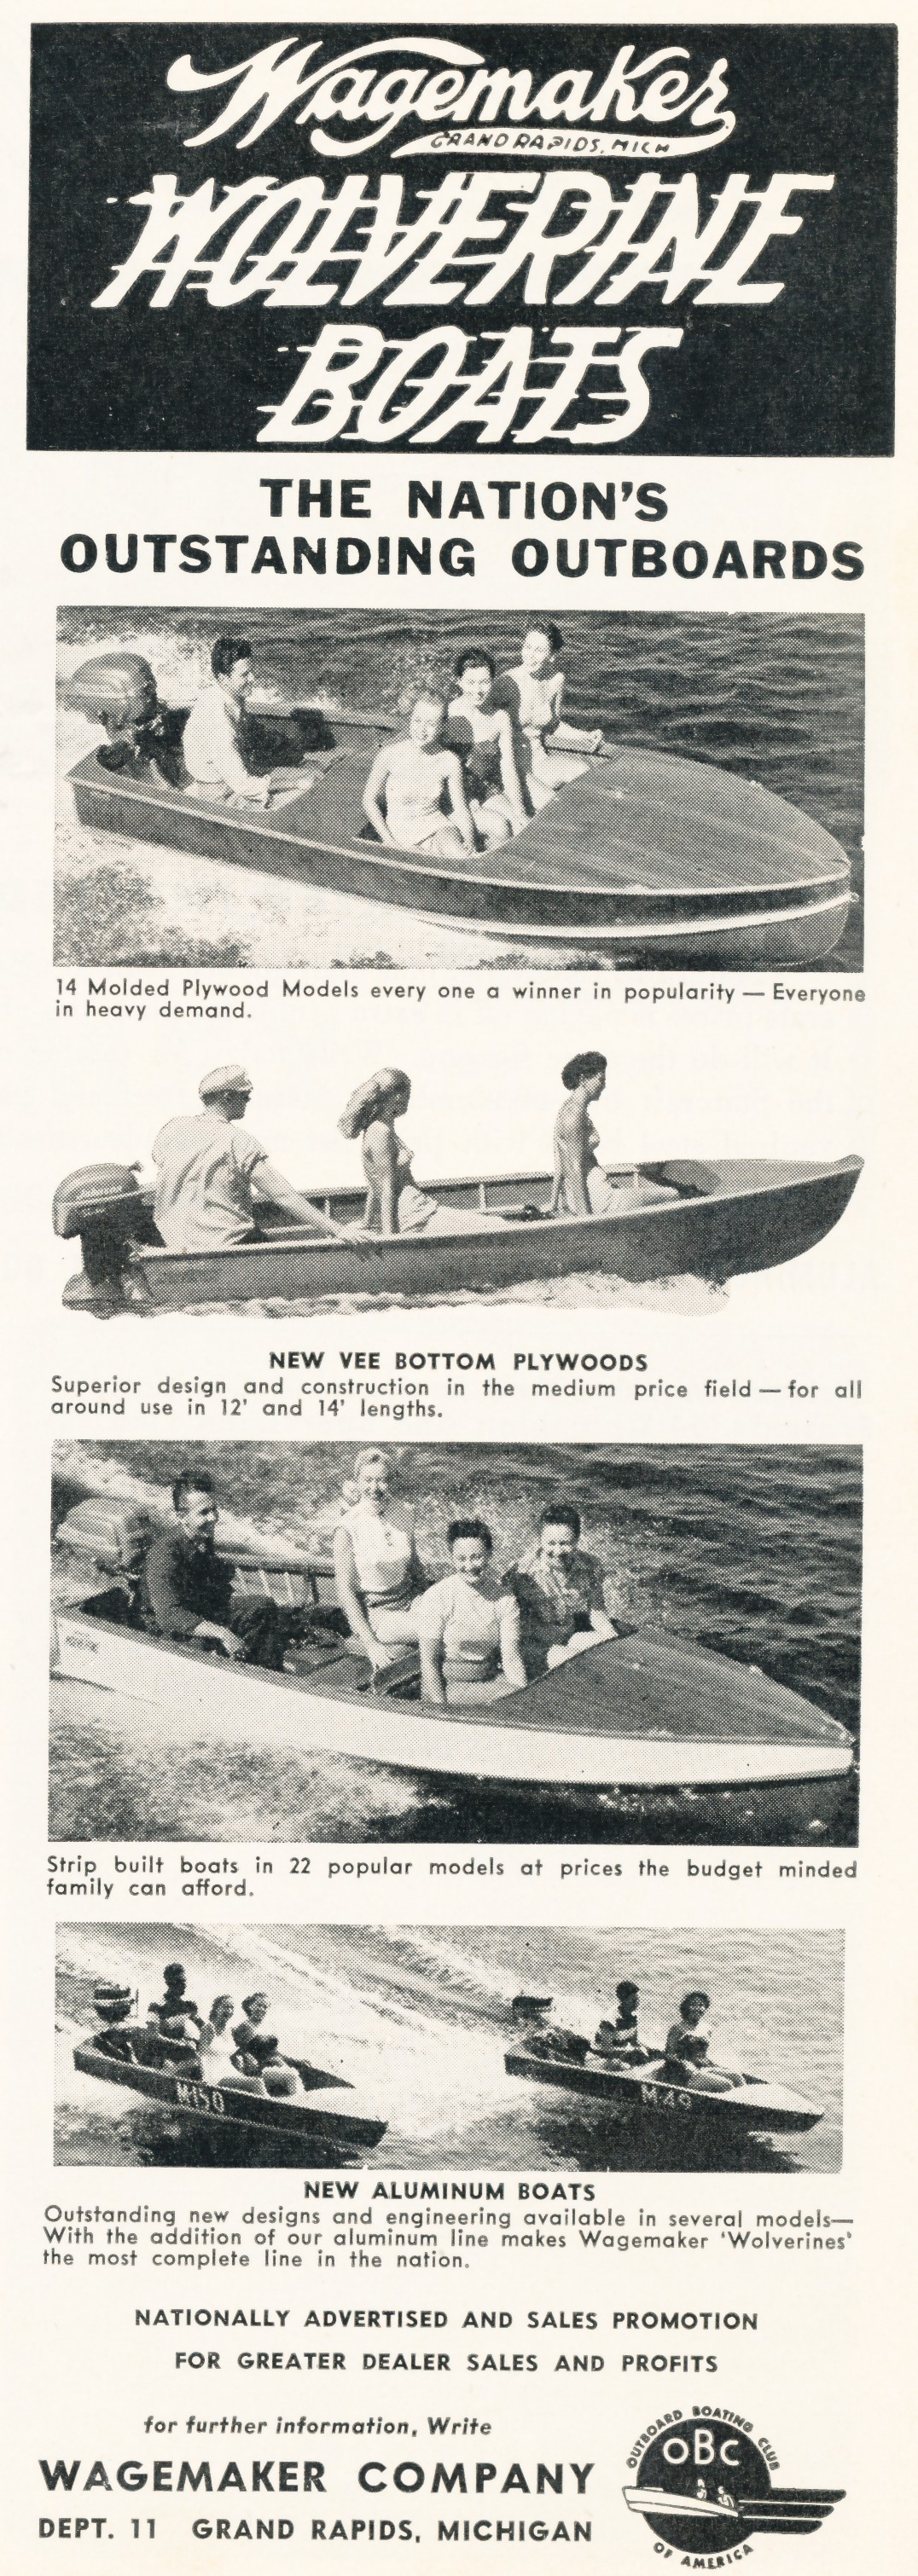 1956 models if you need any specifications of your 1956 wagemaker boats please let me know because i have a lot of factory brochures on your boat below